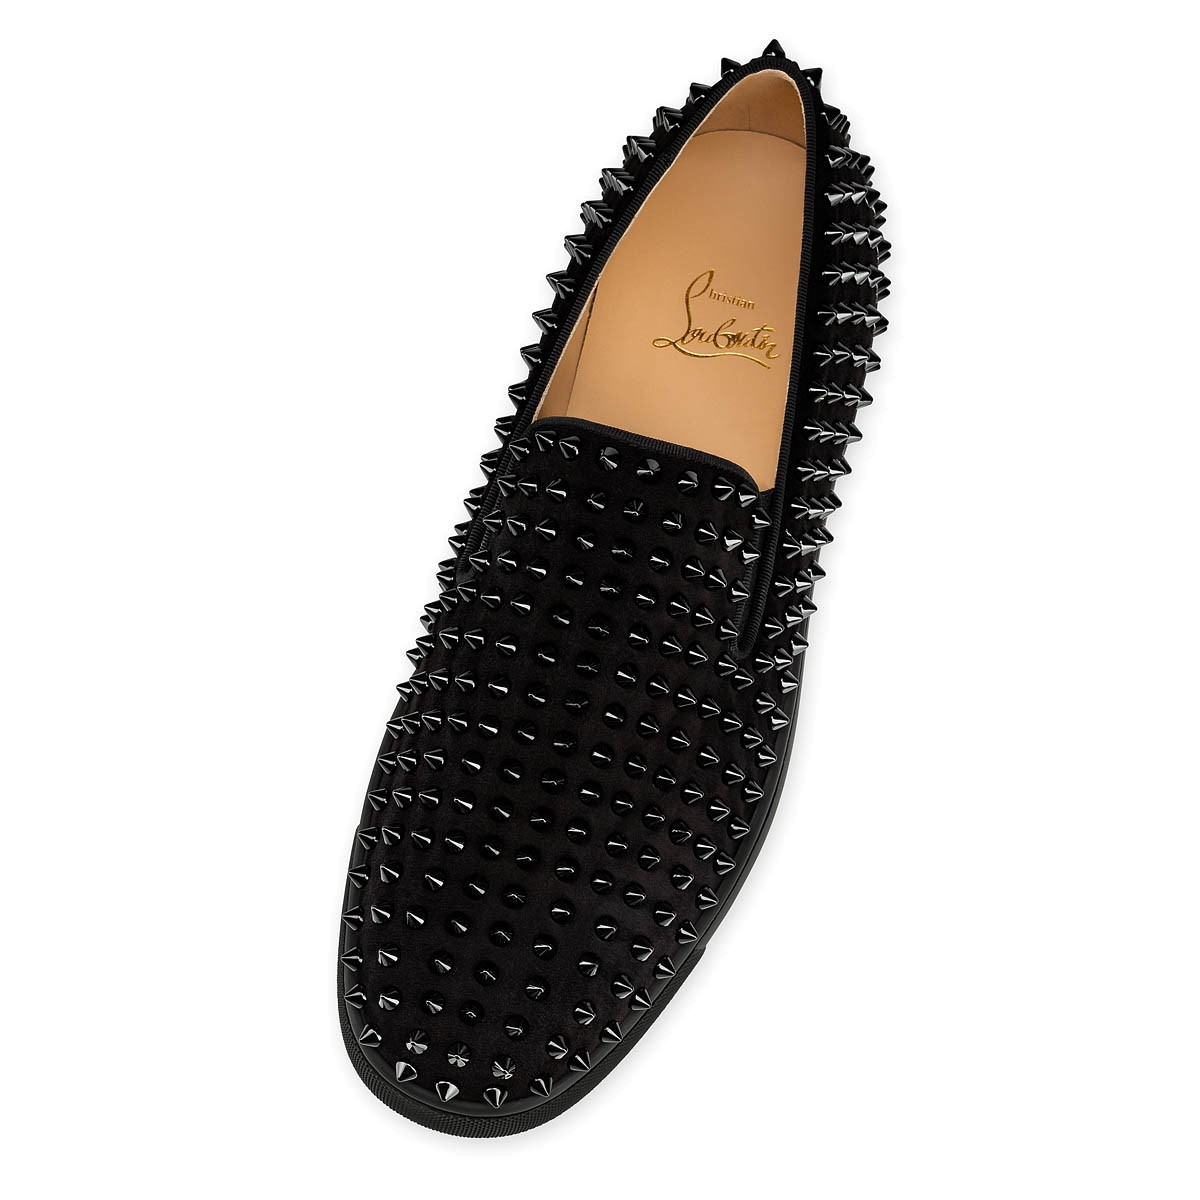 Men Shoes - Roller-boat - Christian Louboutin